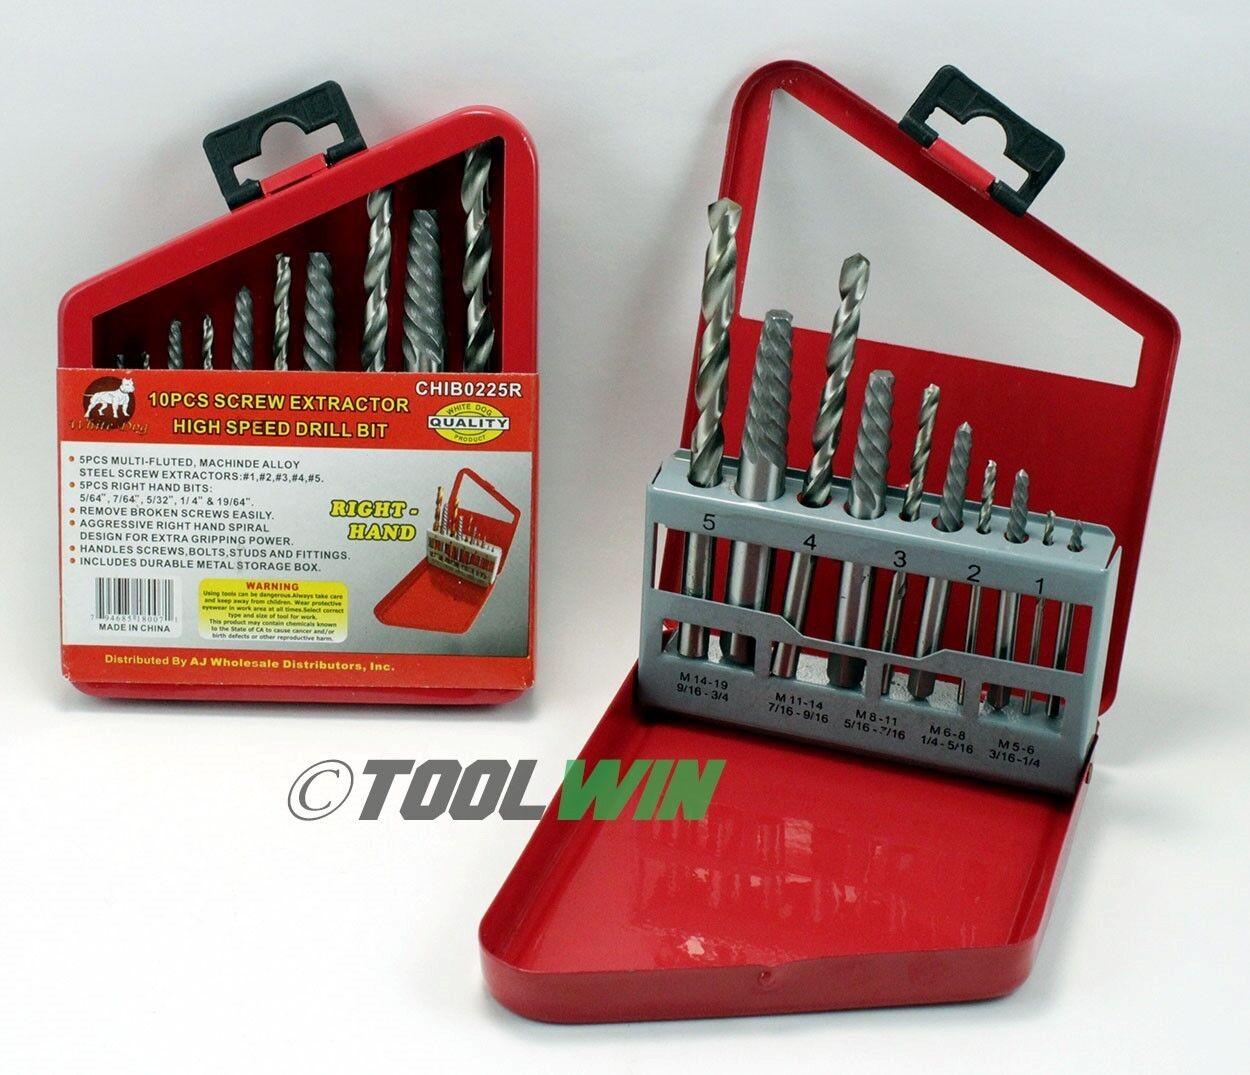 Neiko 10 PC Screw Extractor & Cobalt Drill Bit Set